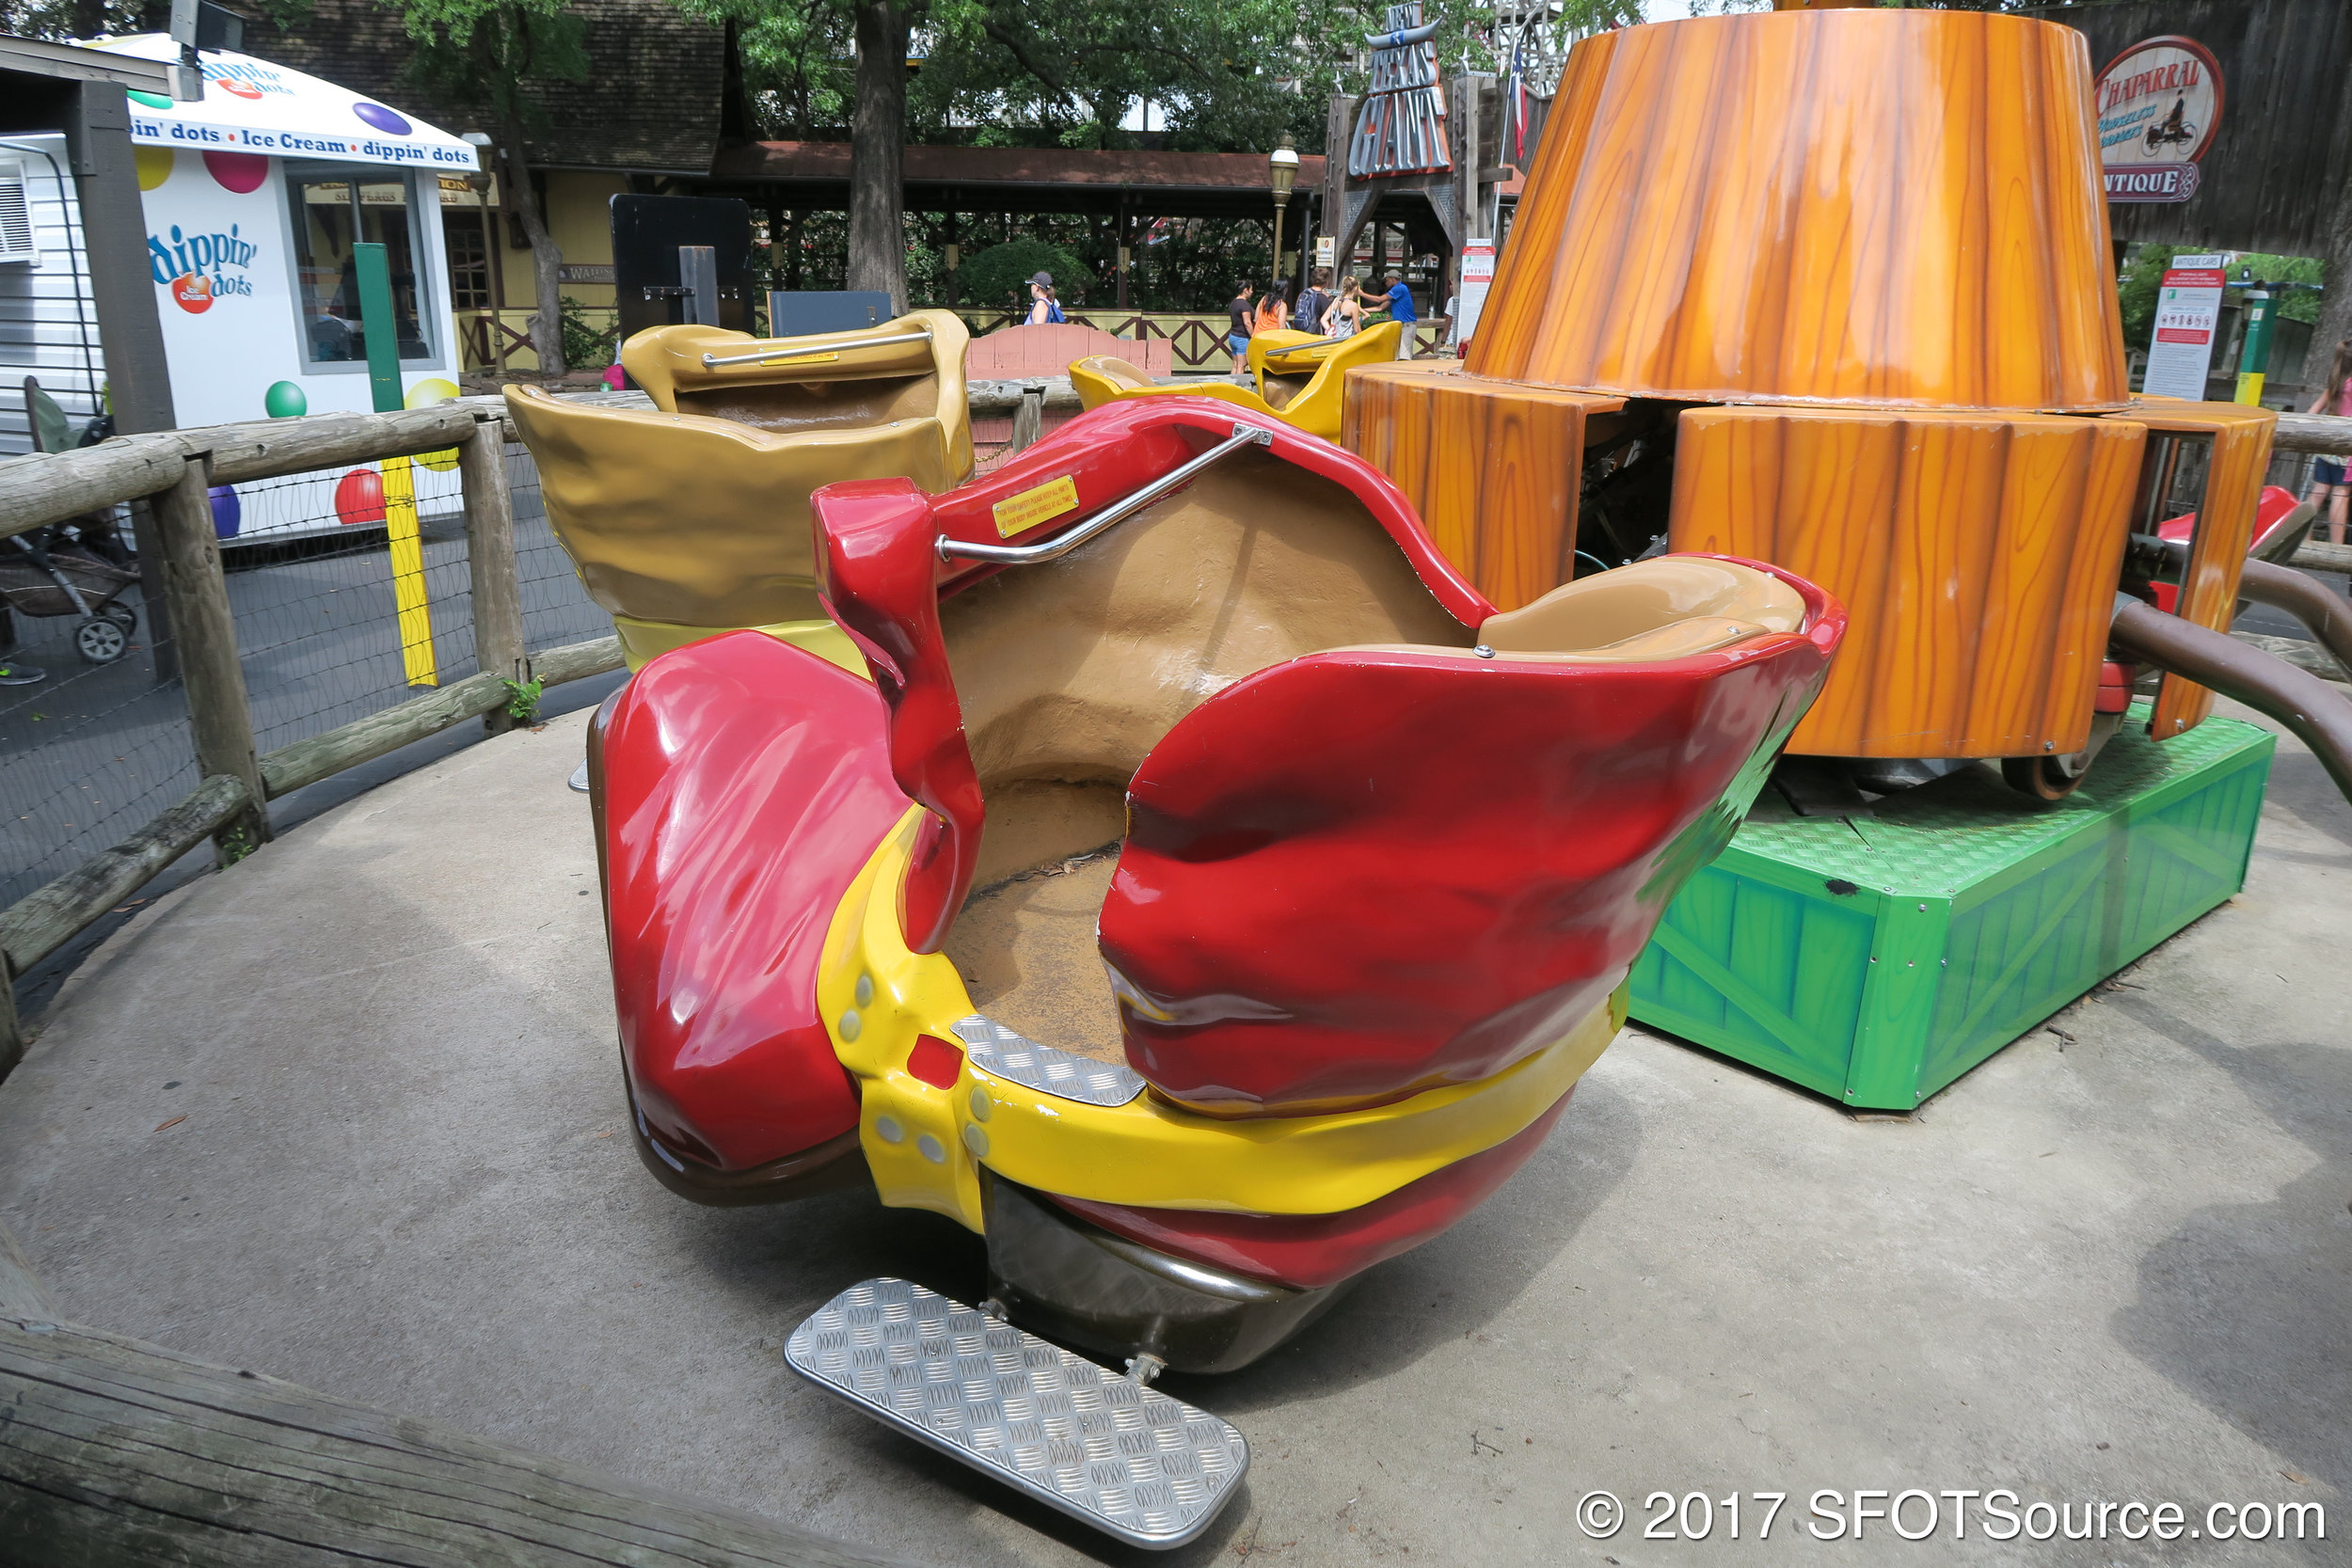 The children's ride is themed around cowboy boots.